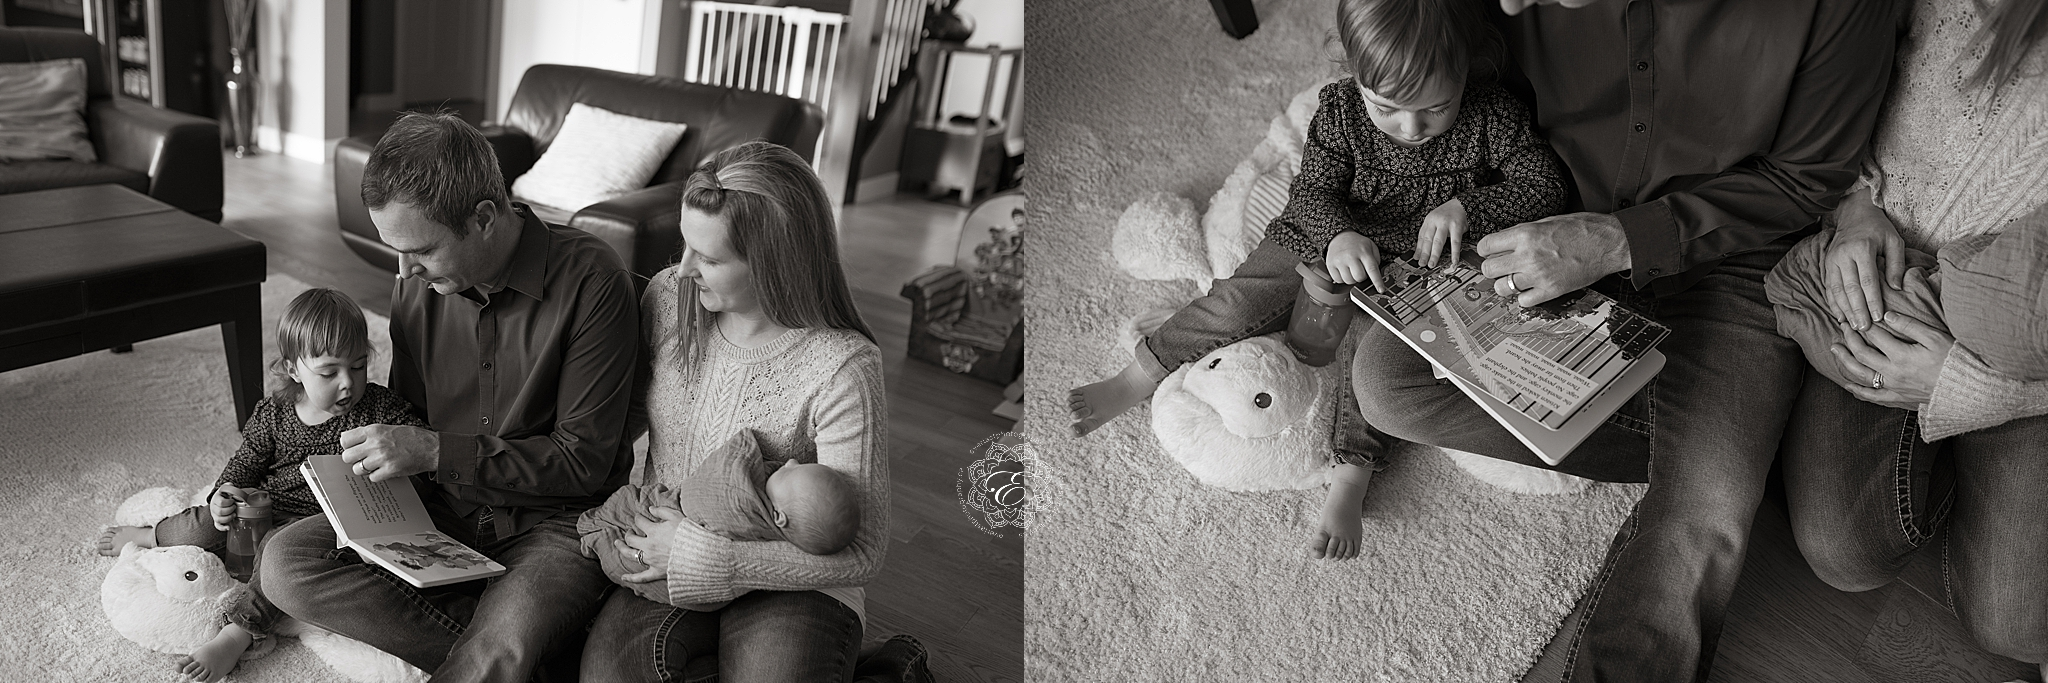 lifestyle-newborn-family-photographer-edmonton.jpg